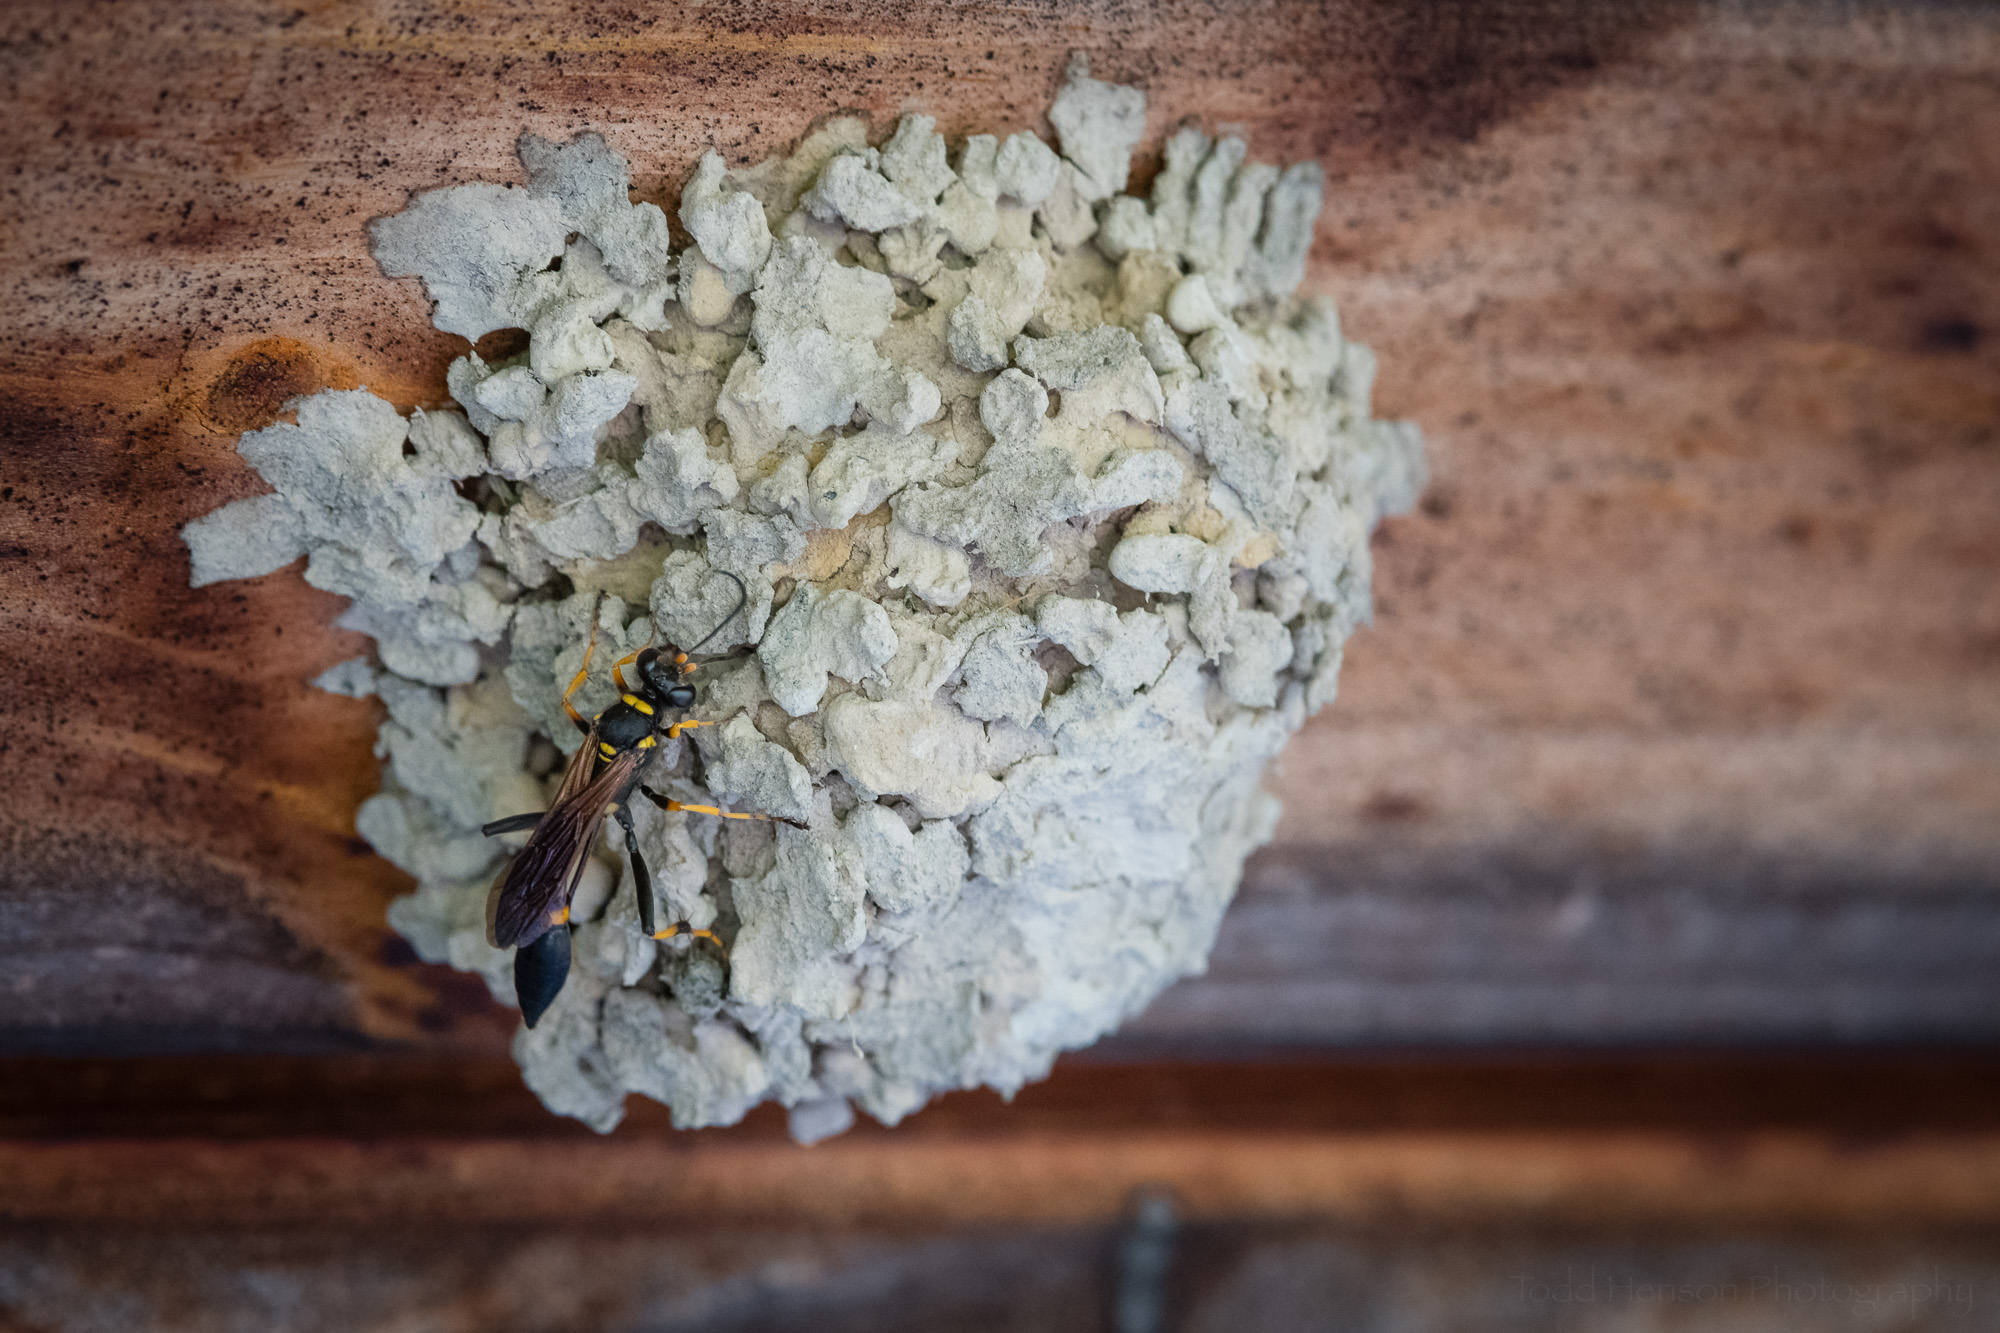 A mud dauber working on her nest.